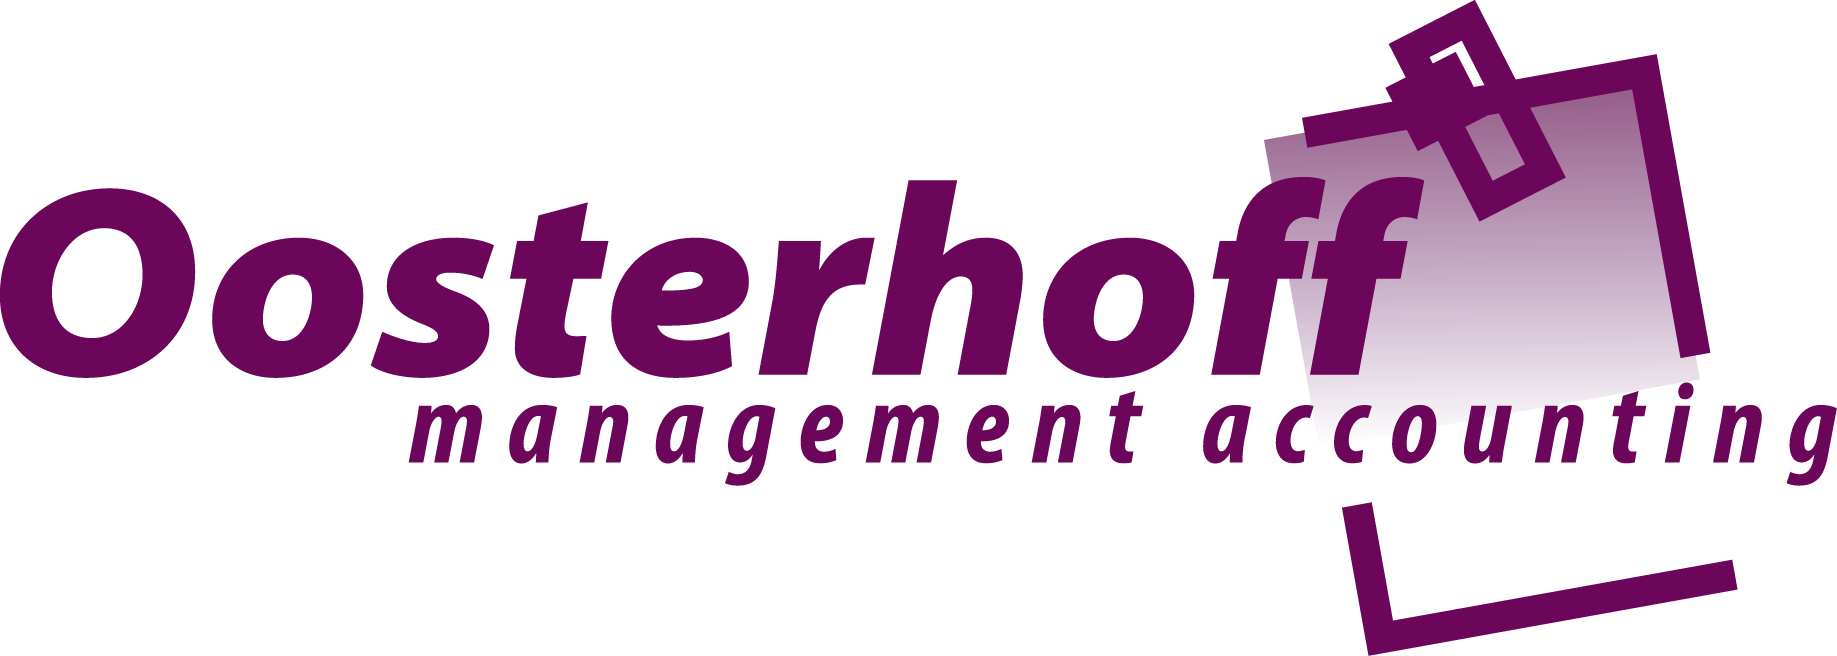 Oosterhoff management accounting